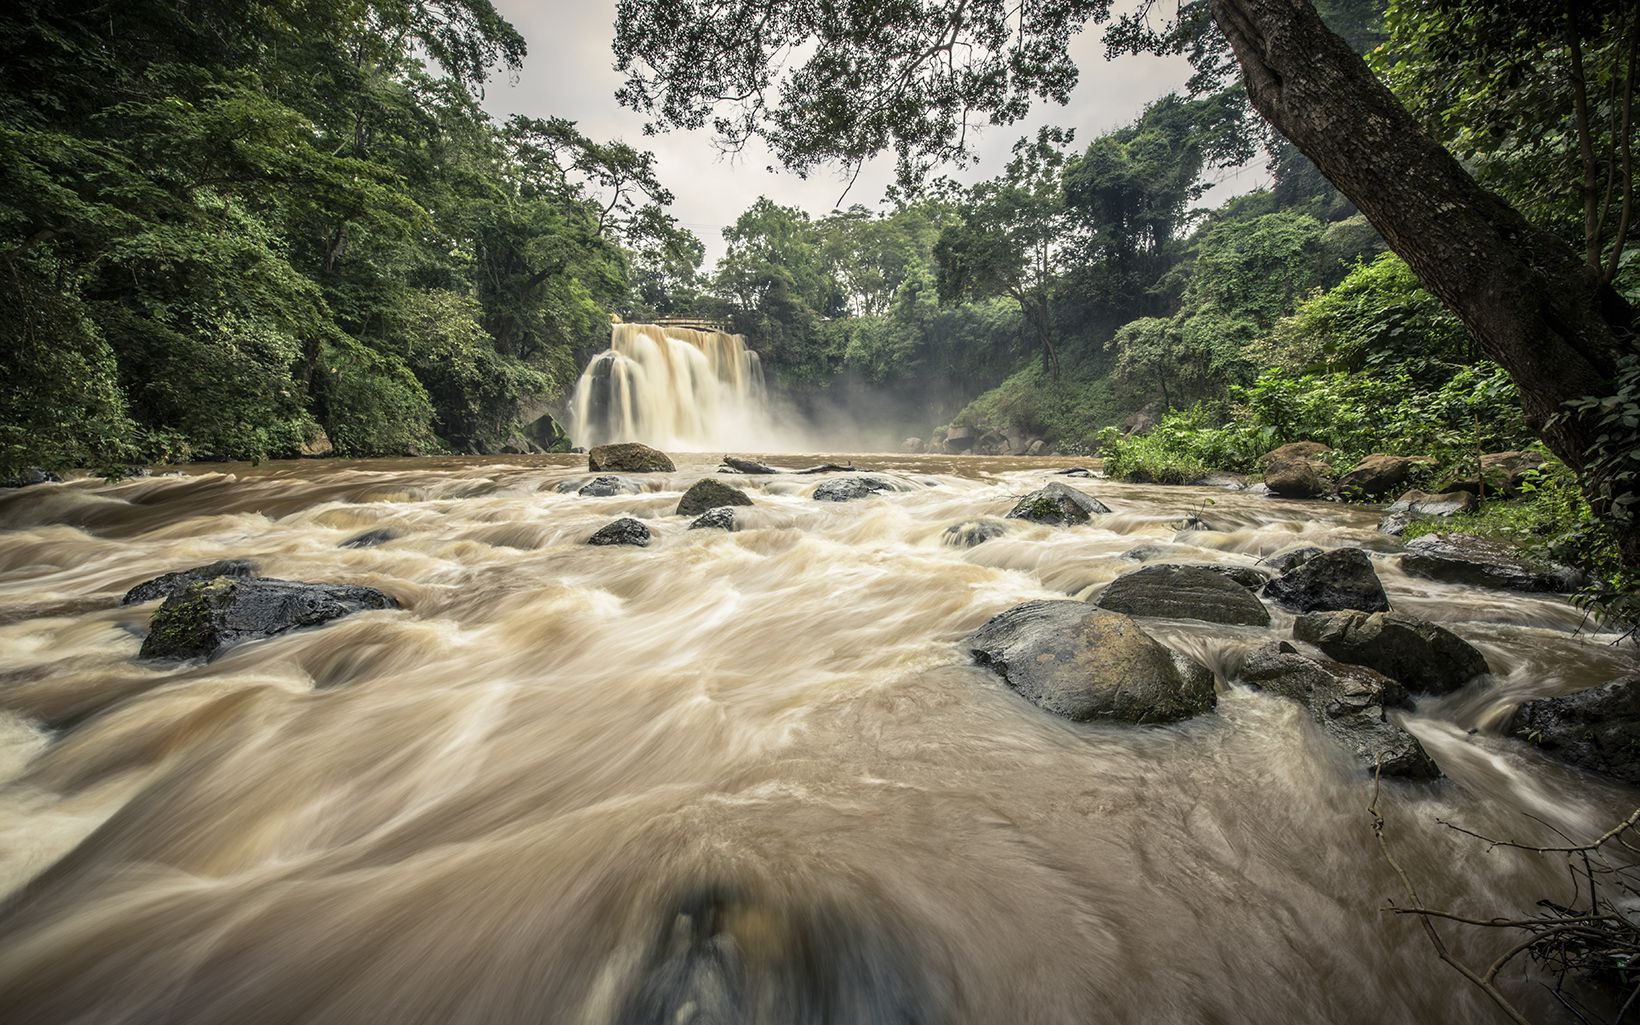 The Nature Conservancy is working to protect the Upper Tana Watershed in Kenya and provide cleaner, more reliable water for Nairobi.